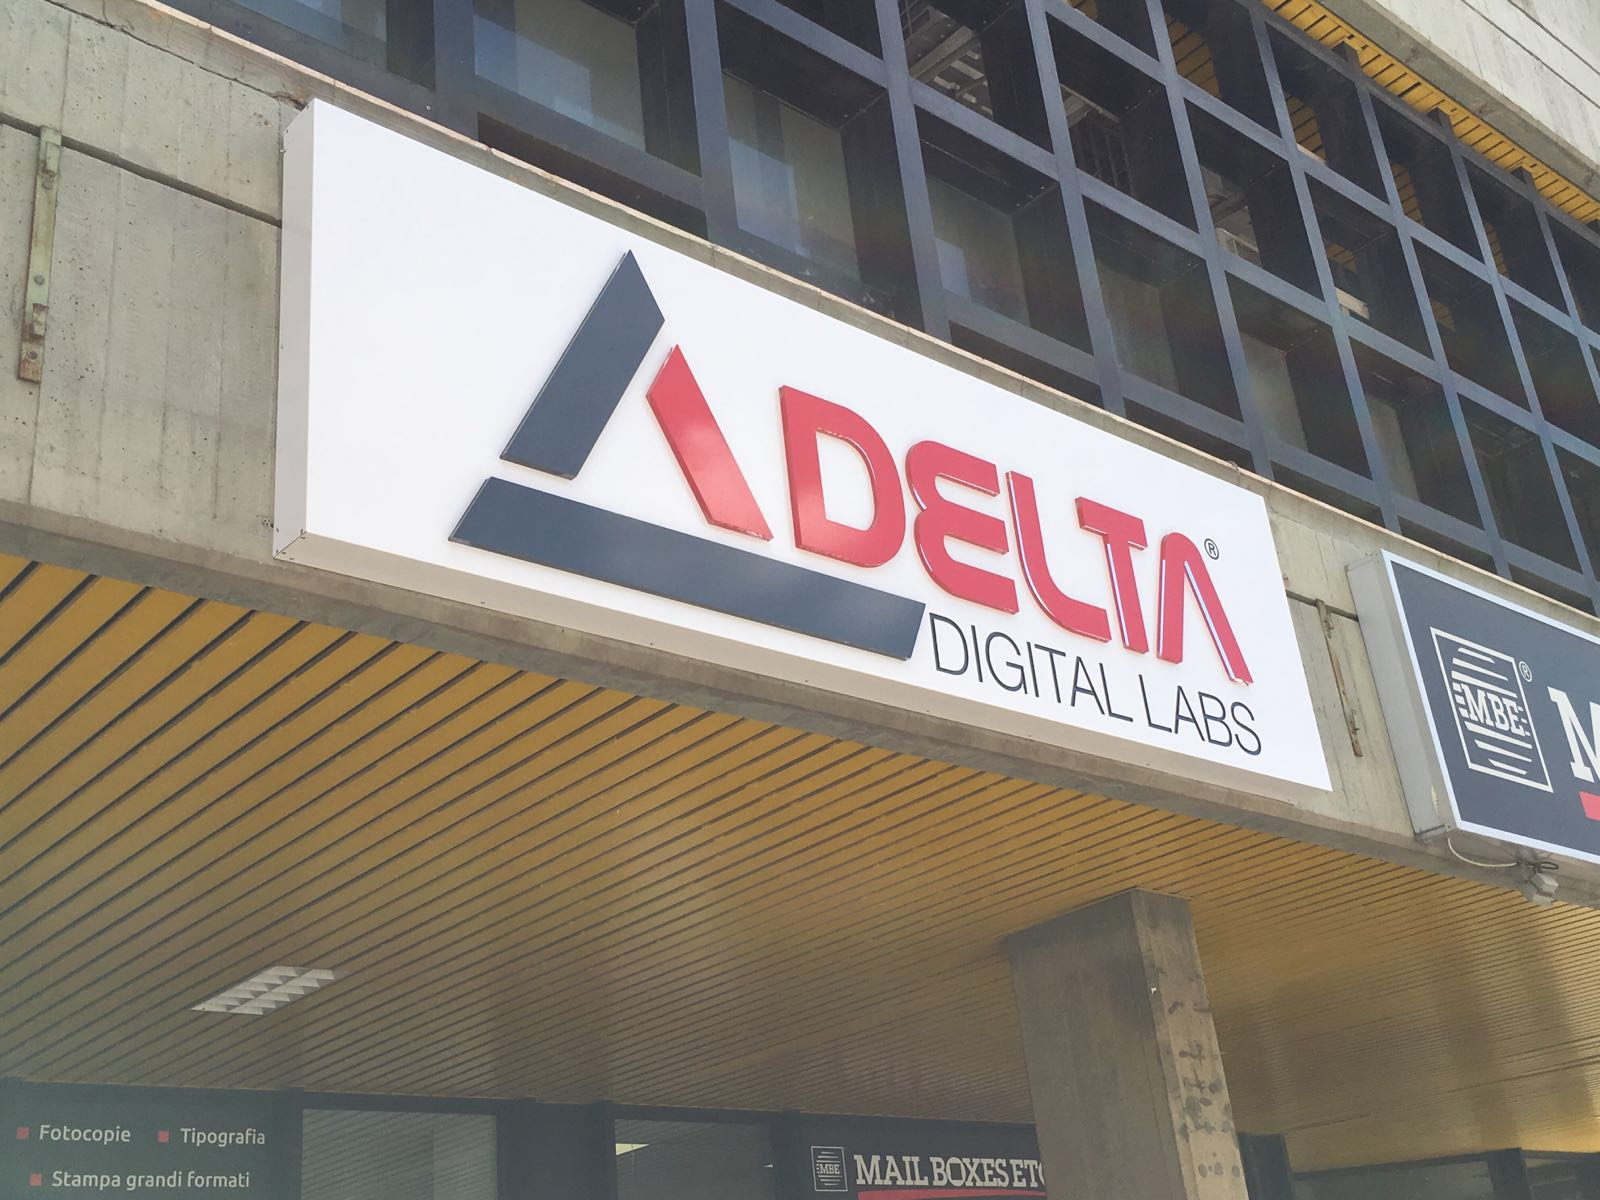 DELTA DIGITAL LABS